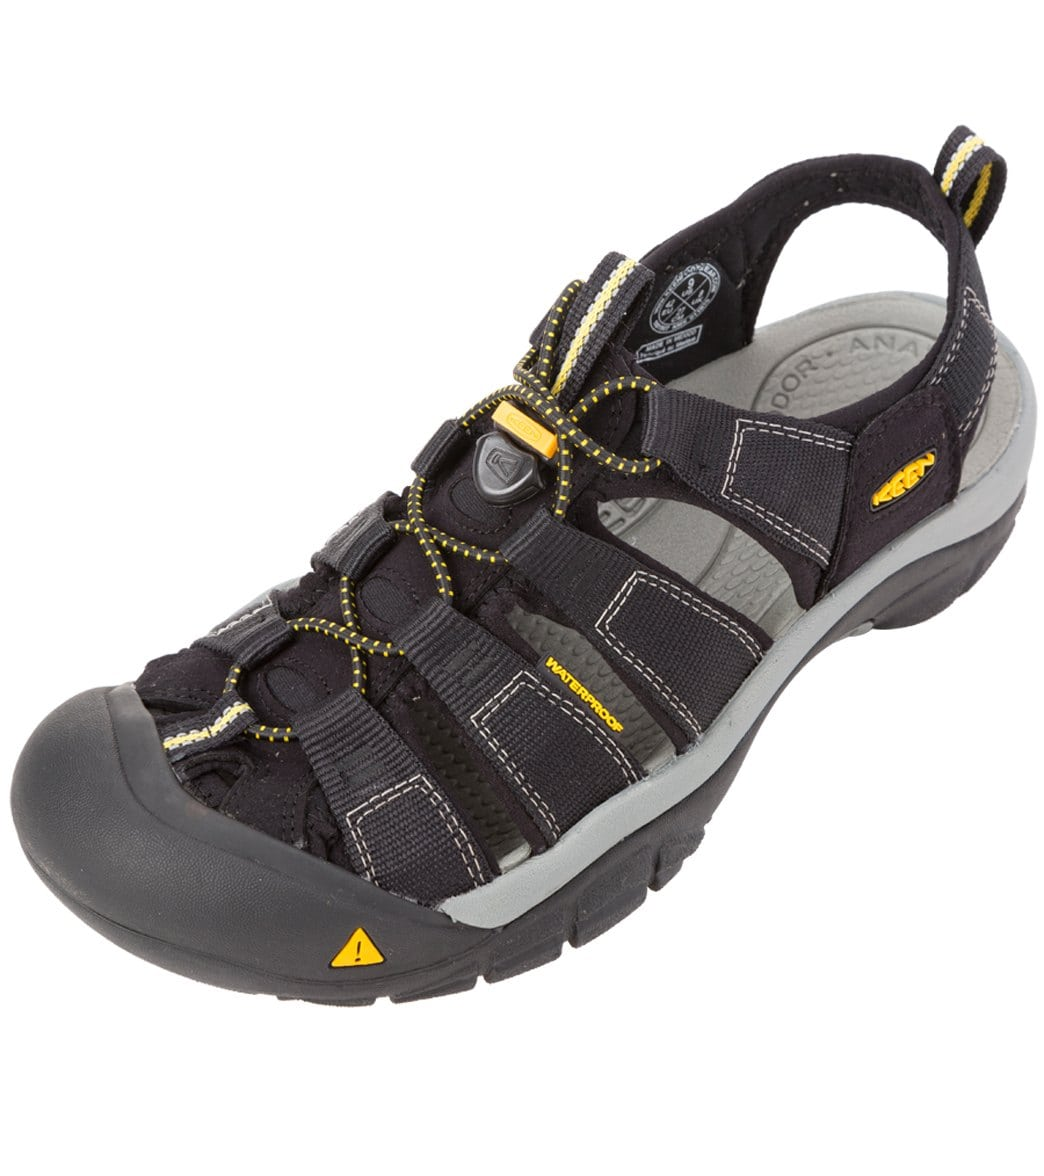 48d158c86df Keen Men's Newport H2 Water Shoes at SwimOutlet.com - Free Shipping